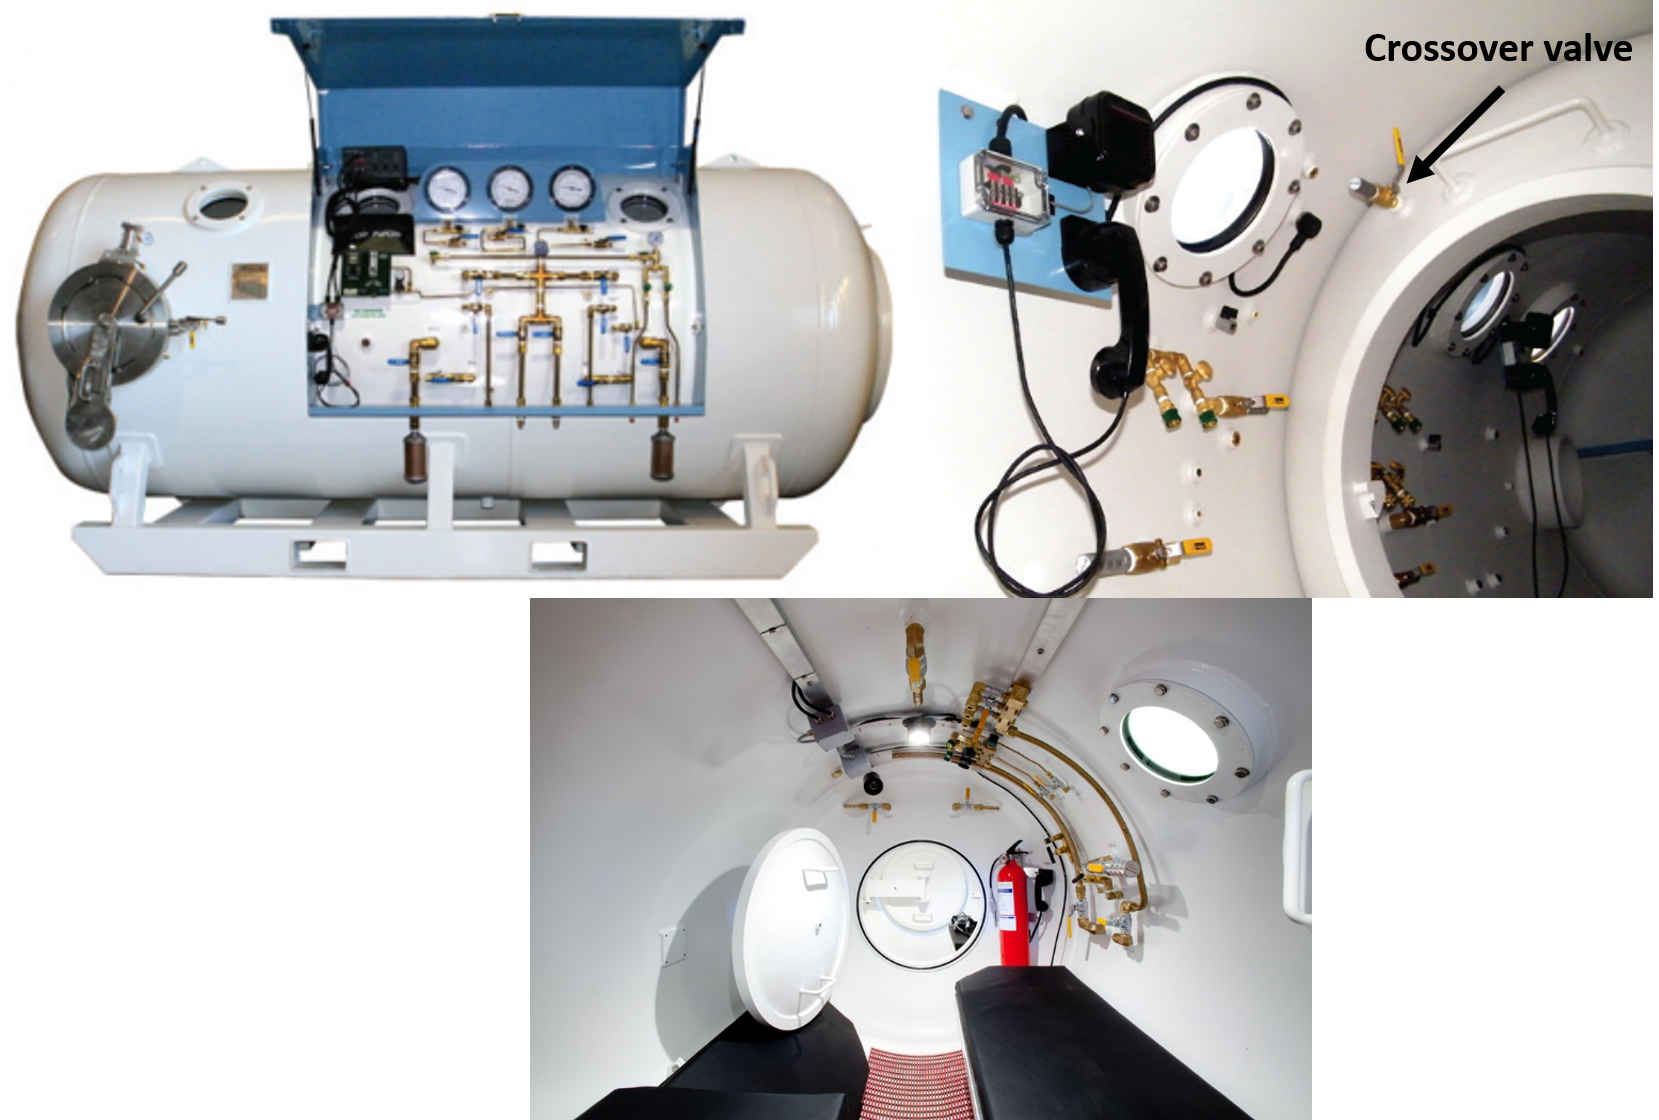 Upper left: deck decompression chamber (DDC) used in commercial diving. Upper right: outer lock of DDC looking into the inner lock, crossover valve pictured. Lower: inner lock of DDC looking out.